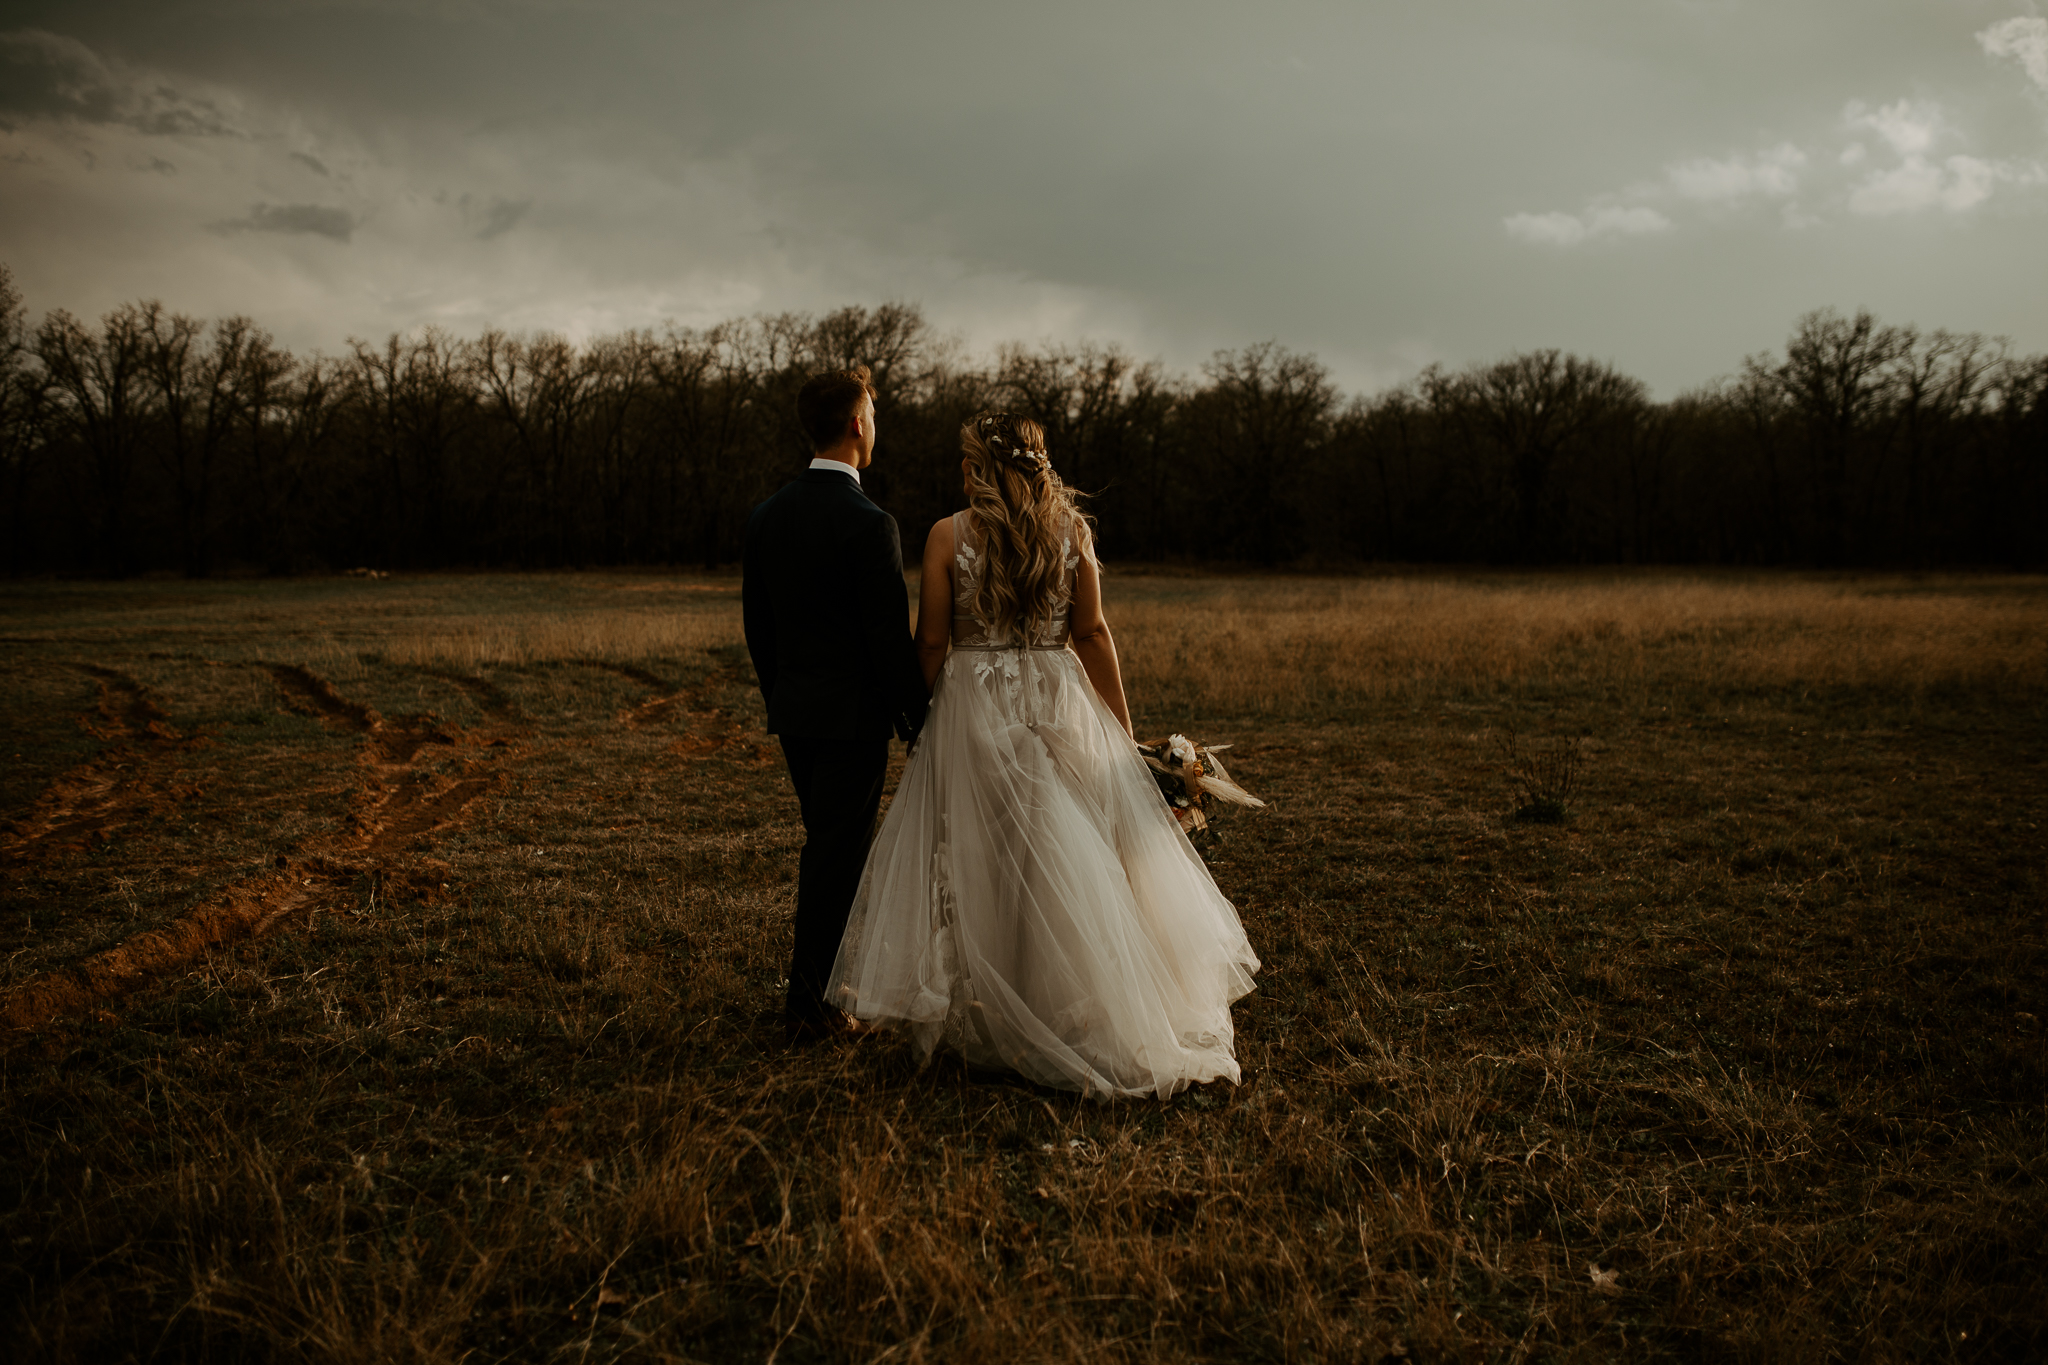 Laken-Mackenzie-Photography-DFW-Wedding-Photographer (34 of 60).jpg